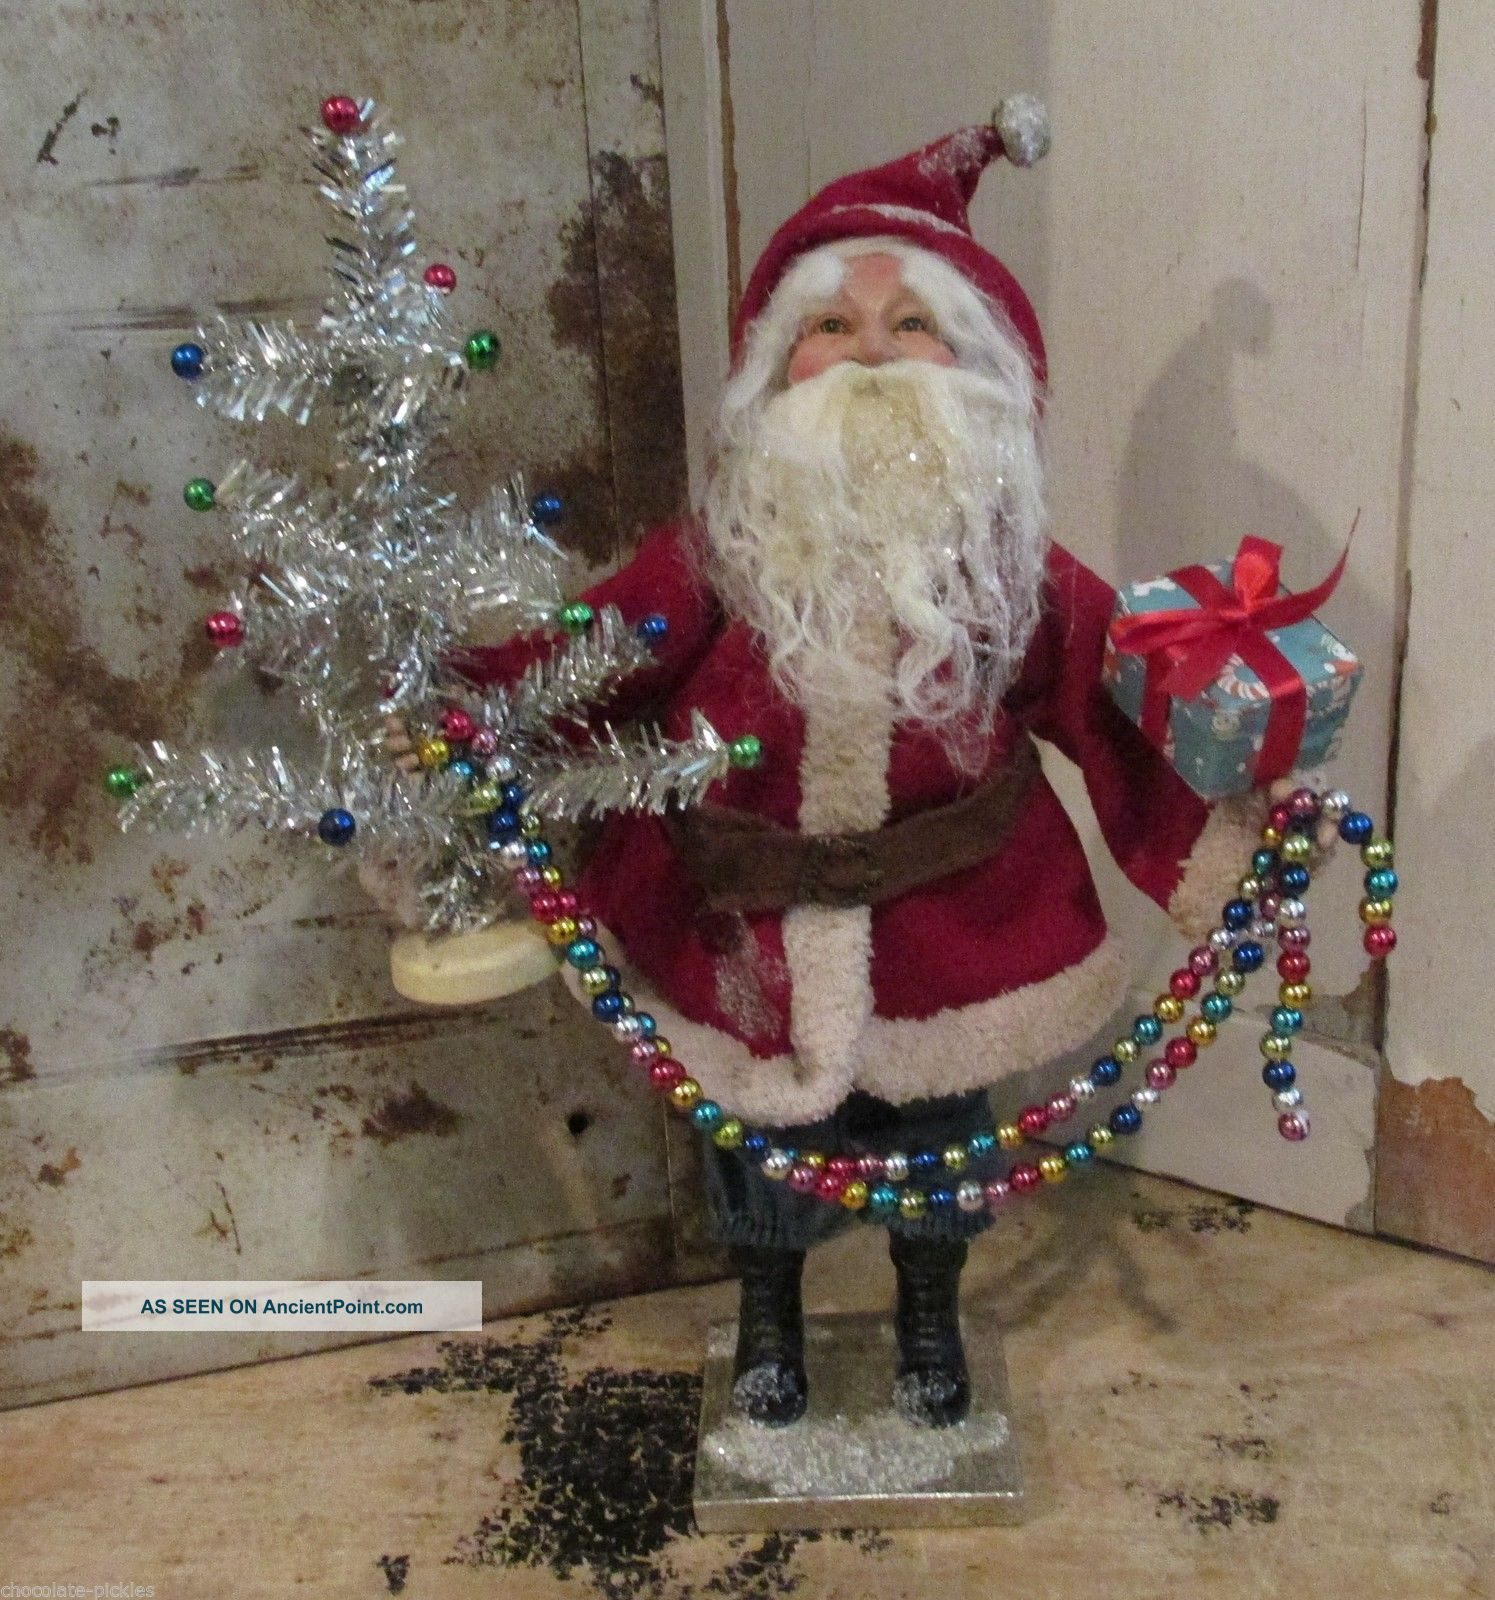 Santa Claus Statue Tinsel Christmas Tree Red Suit Vintage